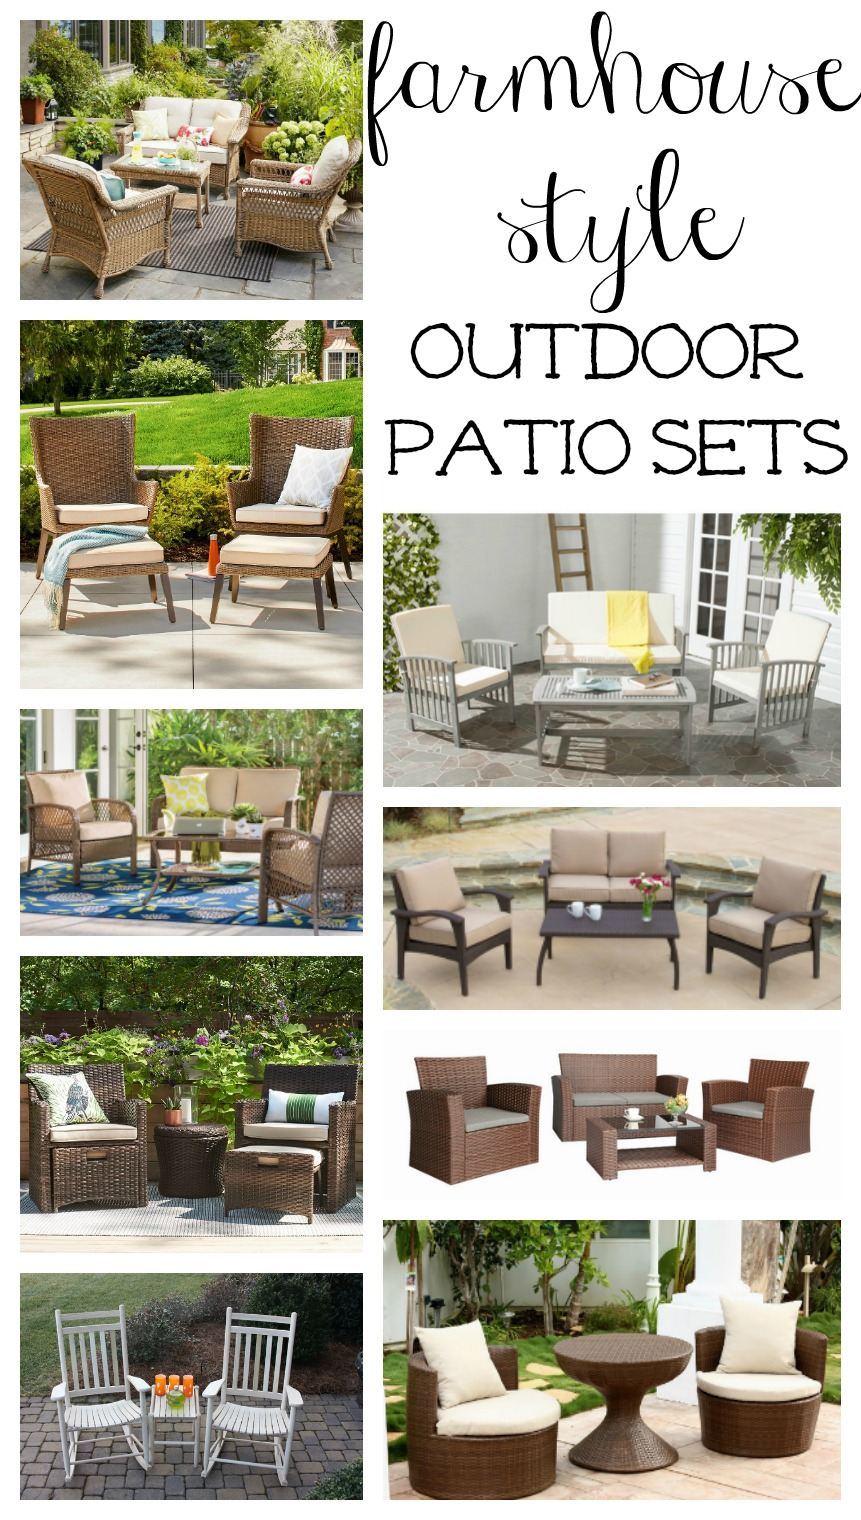 Farmhouse Style Outdoor Patio Sets